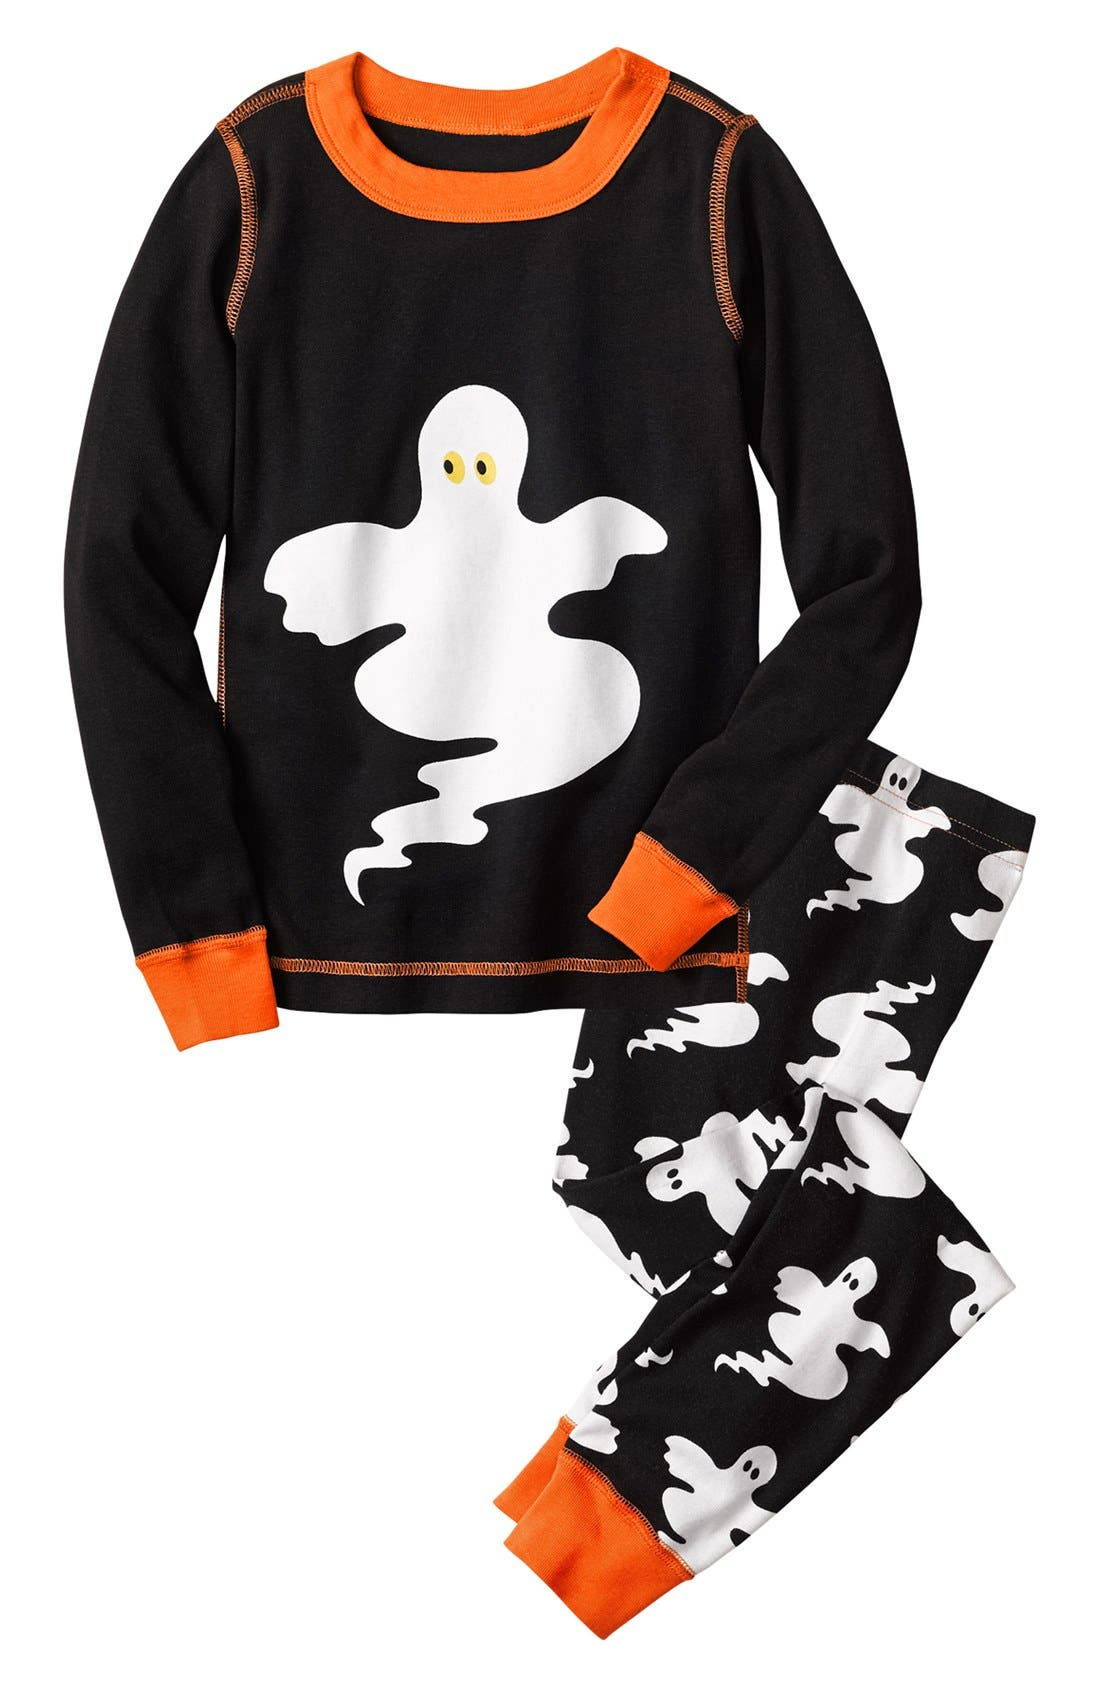 Alternate Image 1 Selected - Hanna Andersson 'Halloween' Fitted Two Piece Fitted Pajamas (Toddler)